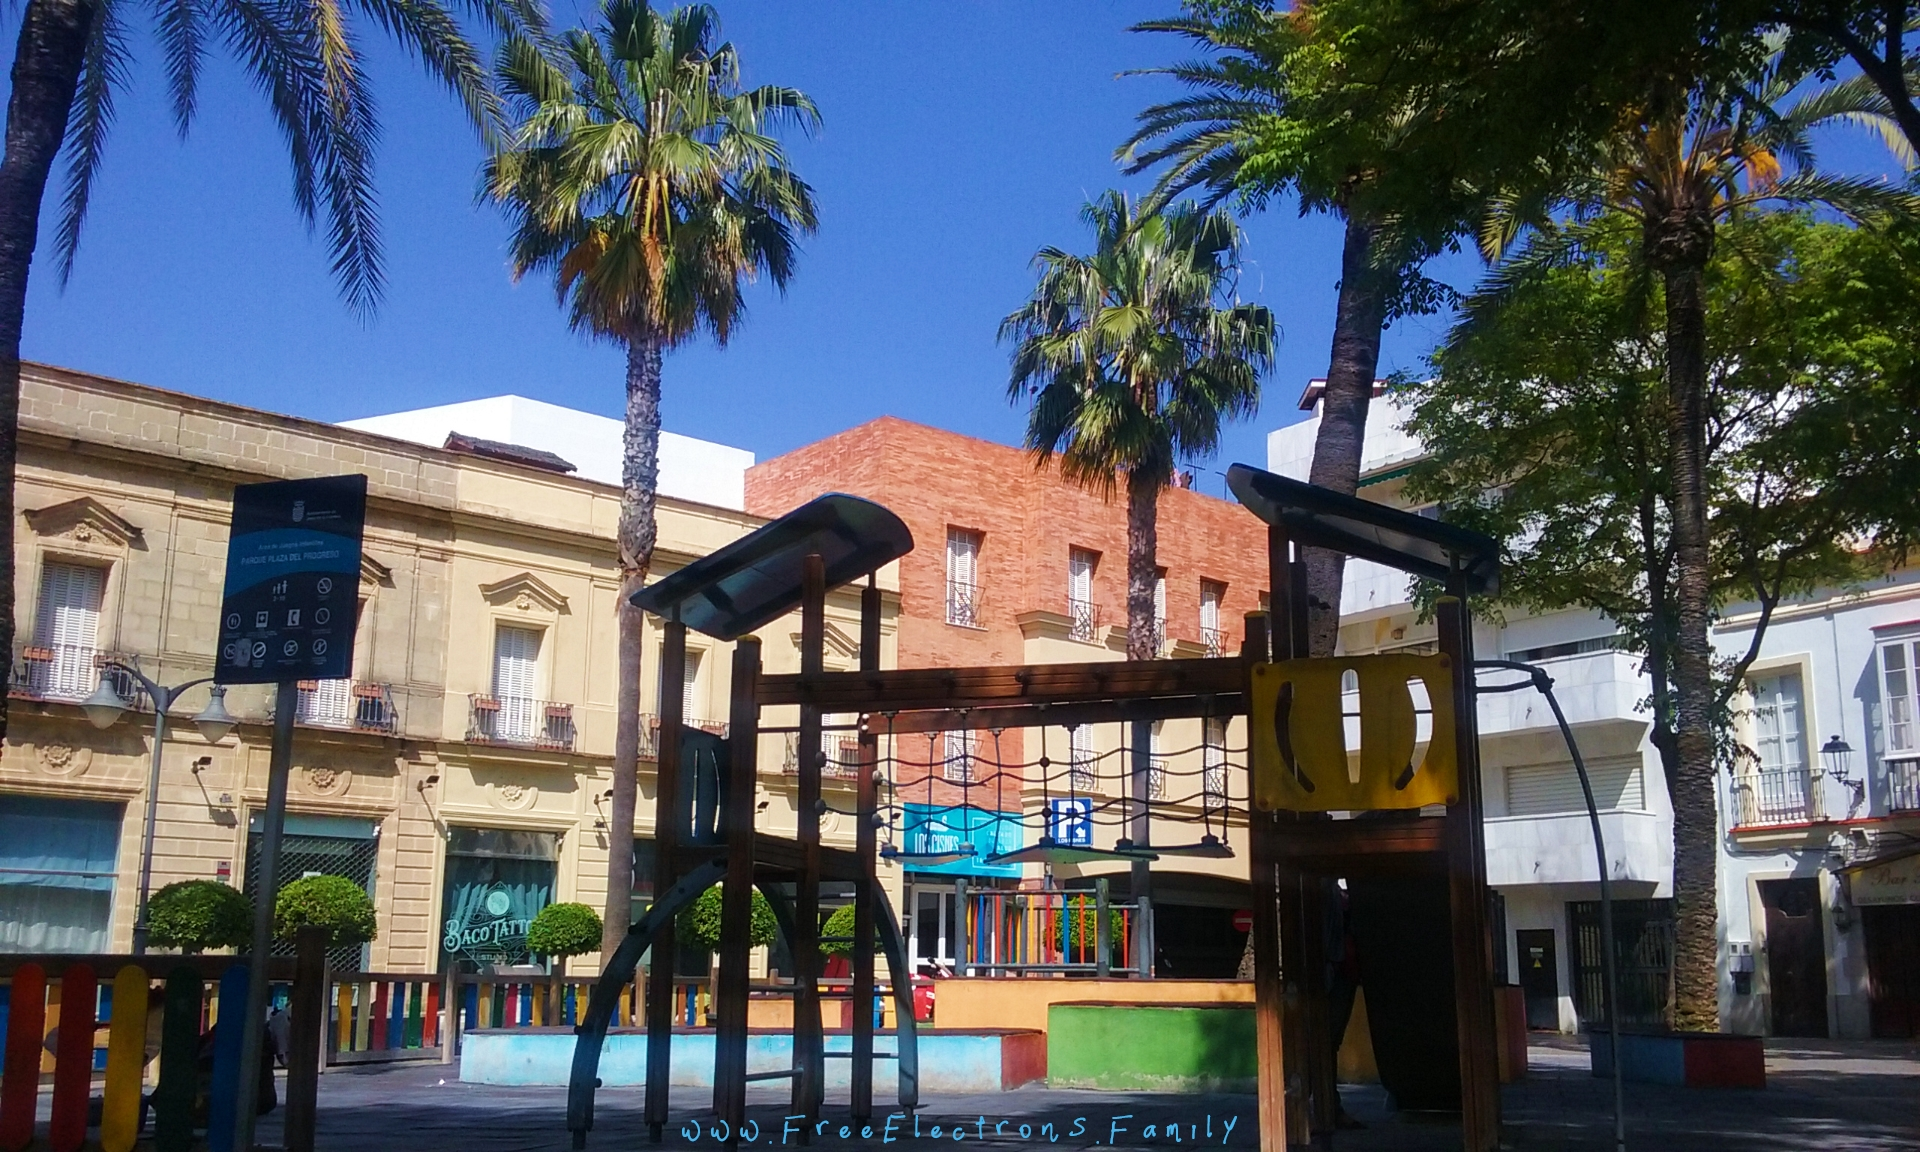 Plaza del Progresso:  old and worn-out play things at the plazas Area de Juegos Infantiles (playground) surrounded by tapas bars/restaurants.